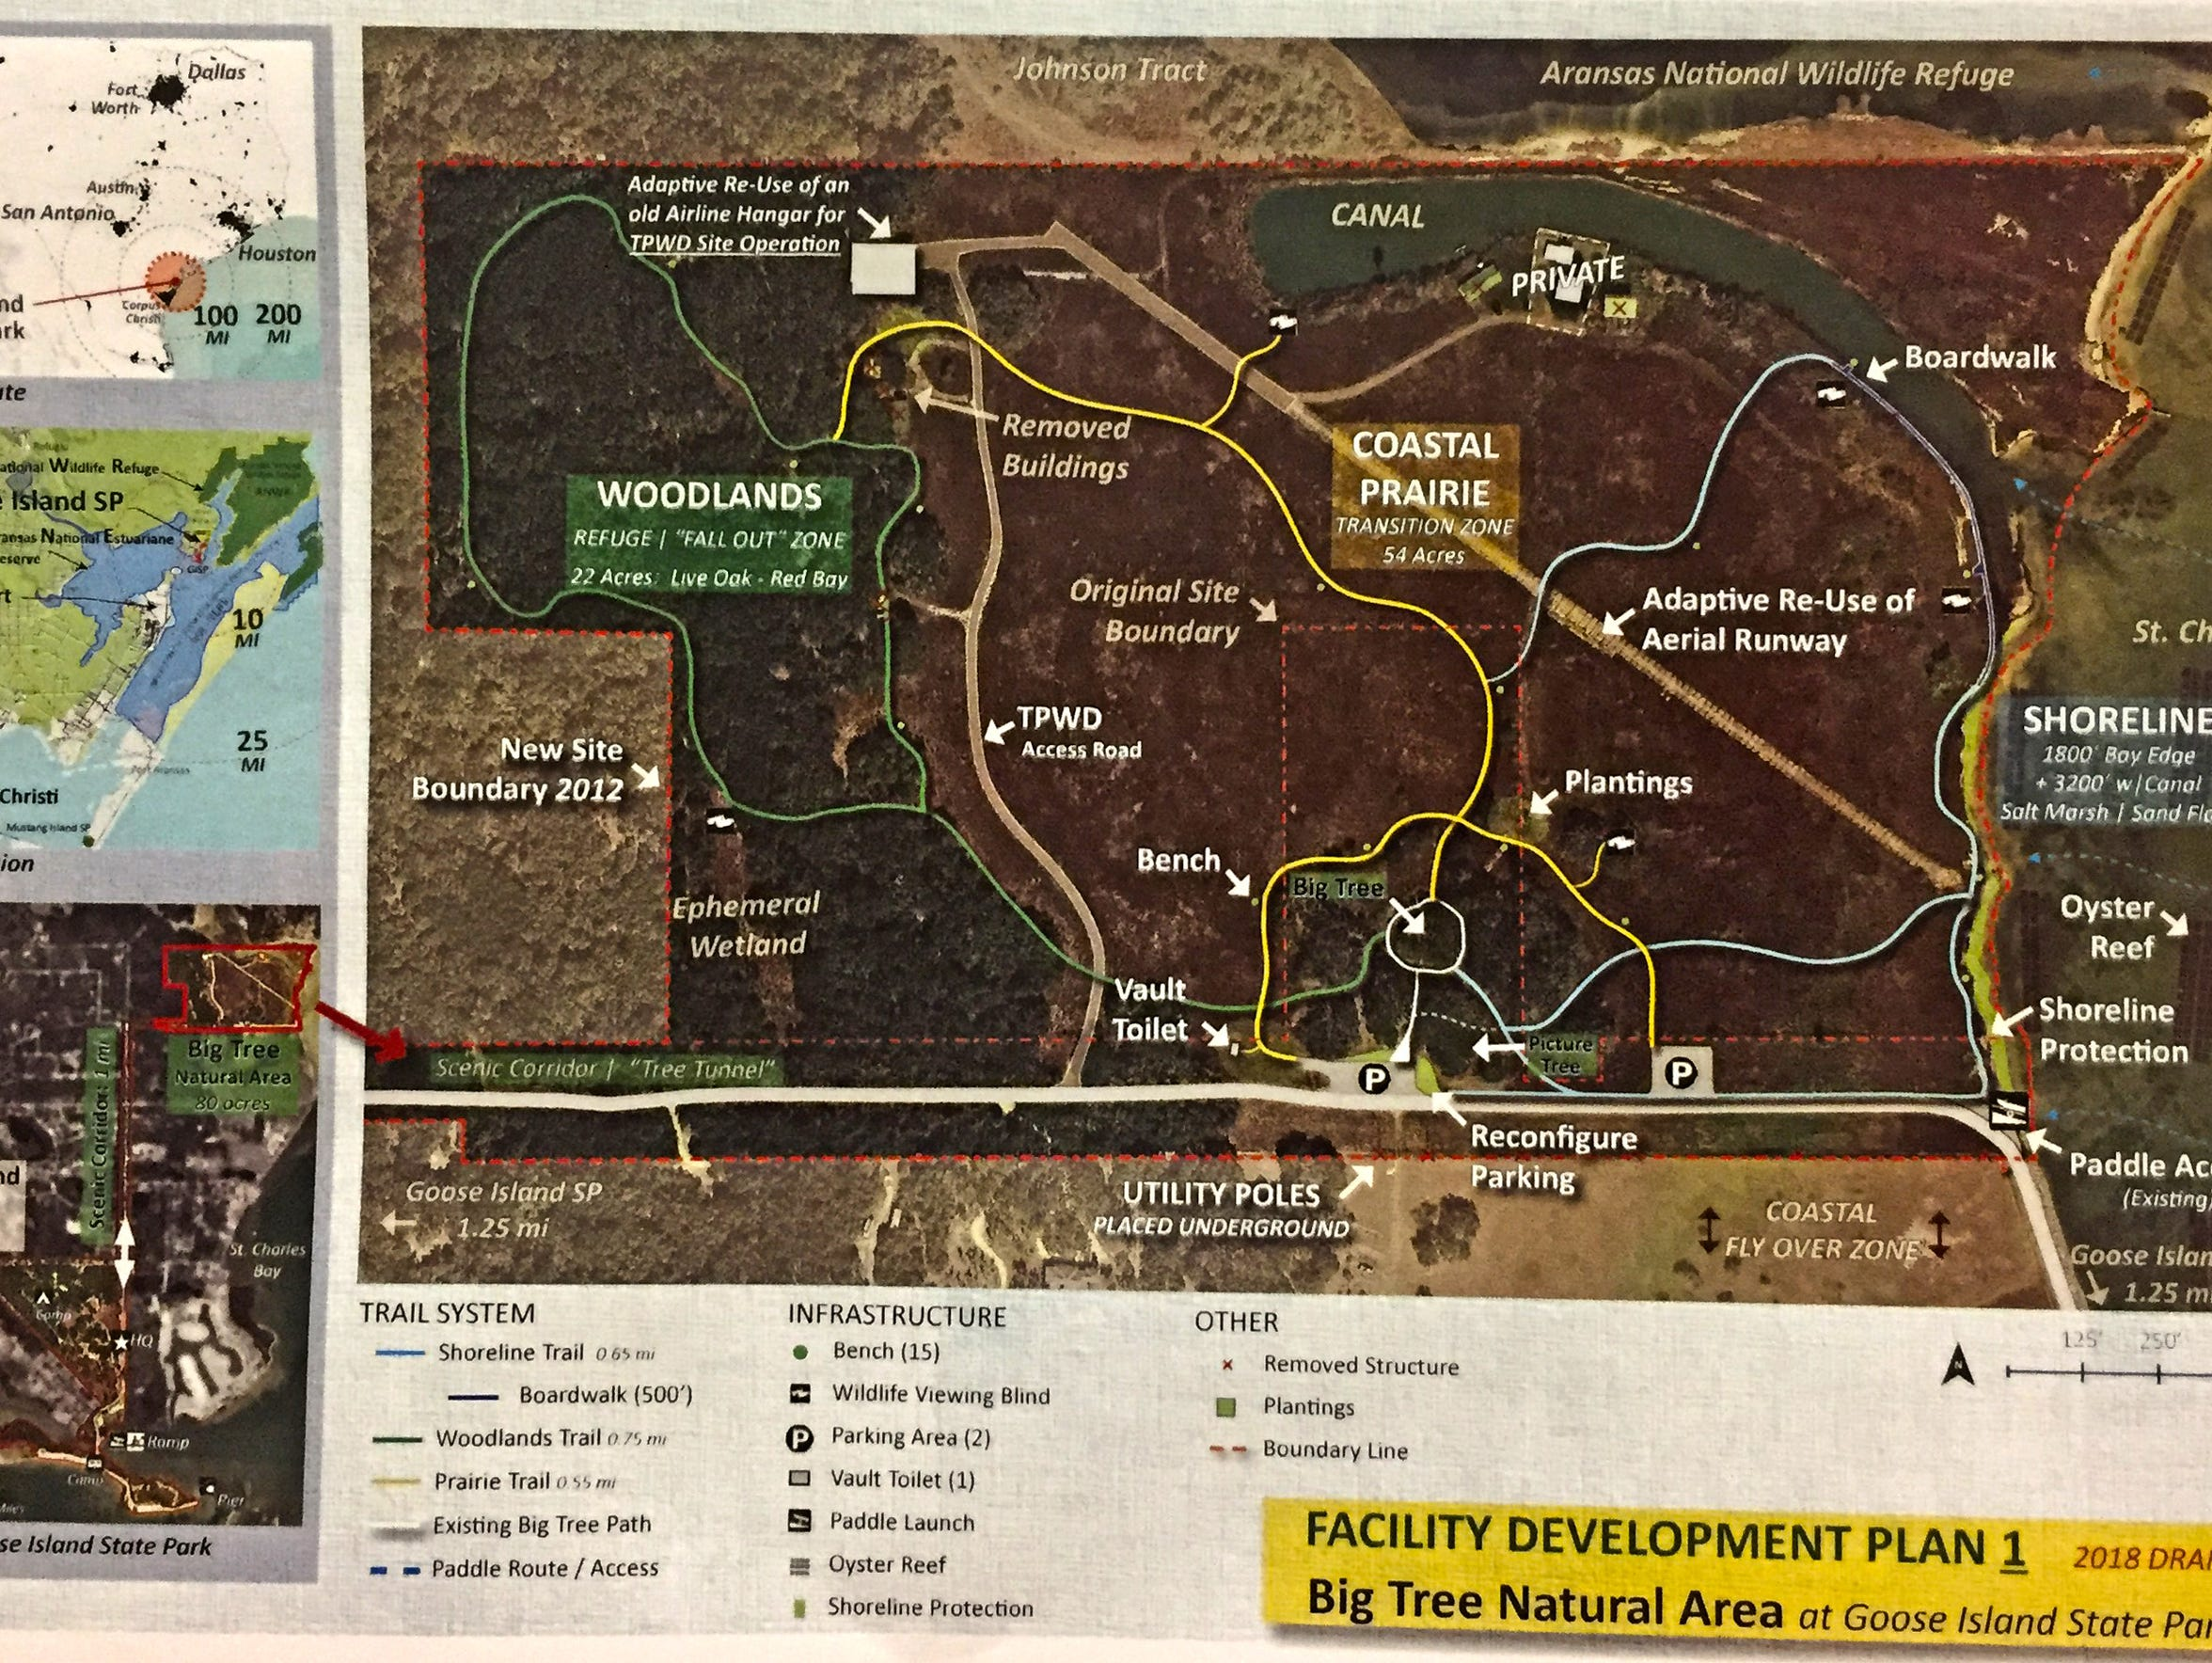 This is a revised plan of proposed developments on